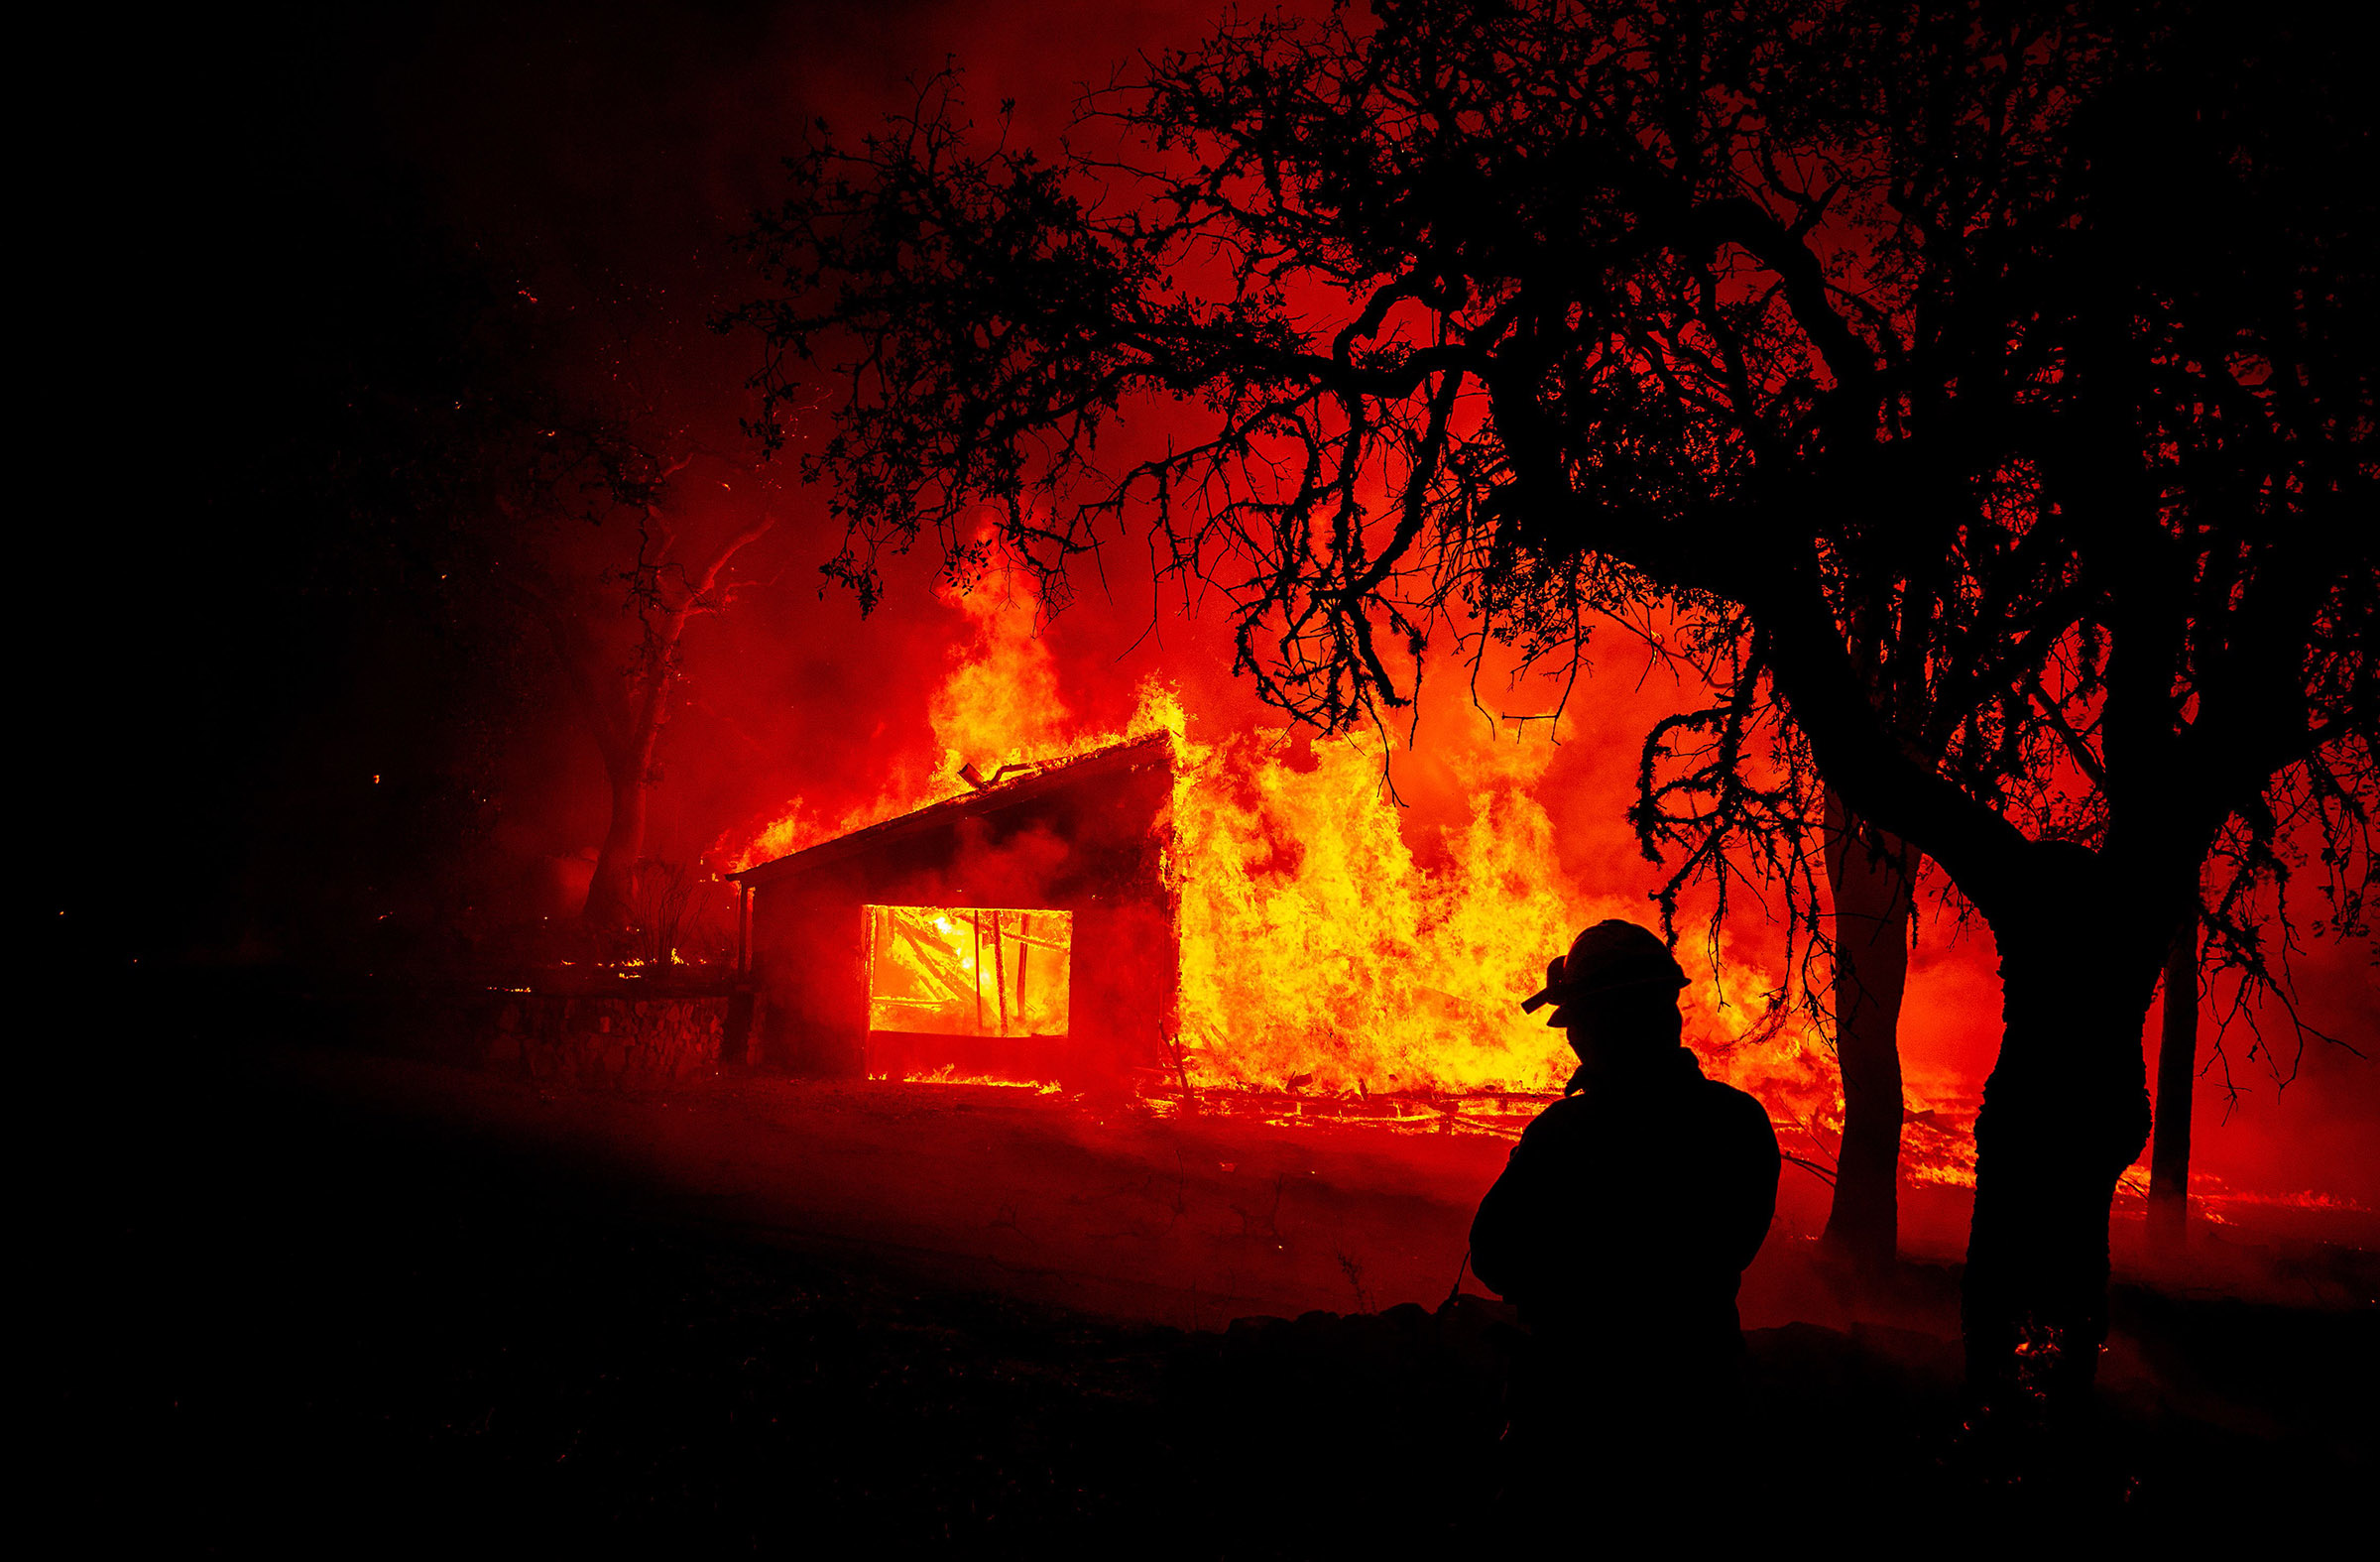 2 new California wildfires burn nearly 10,000 acres in a day and force evacuations